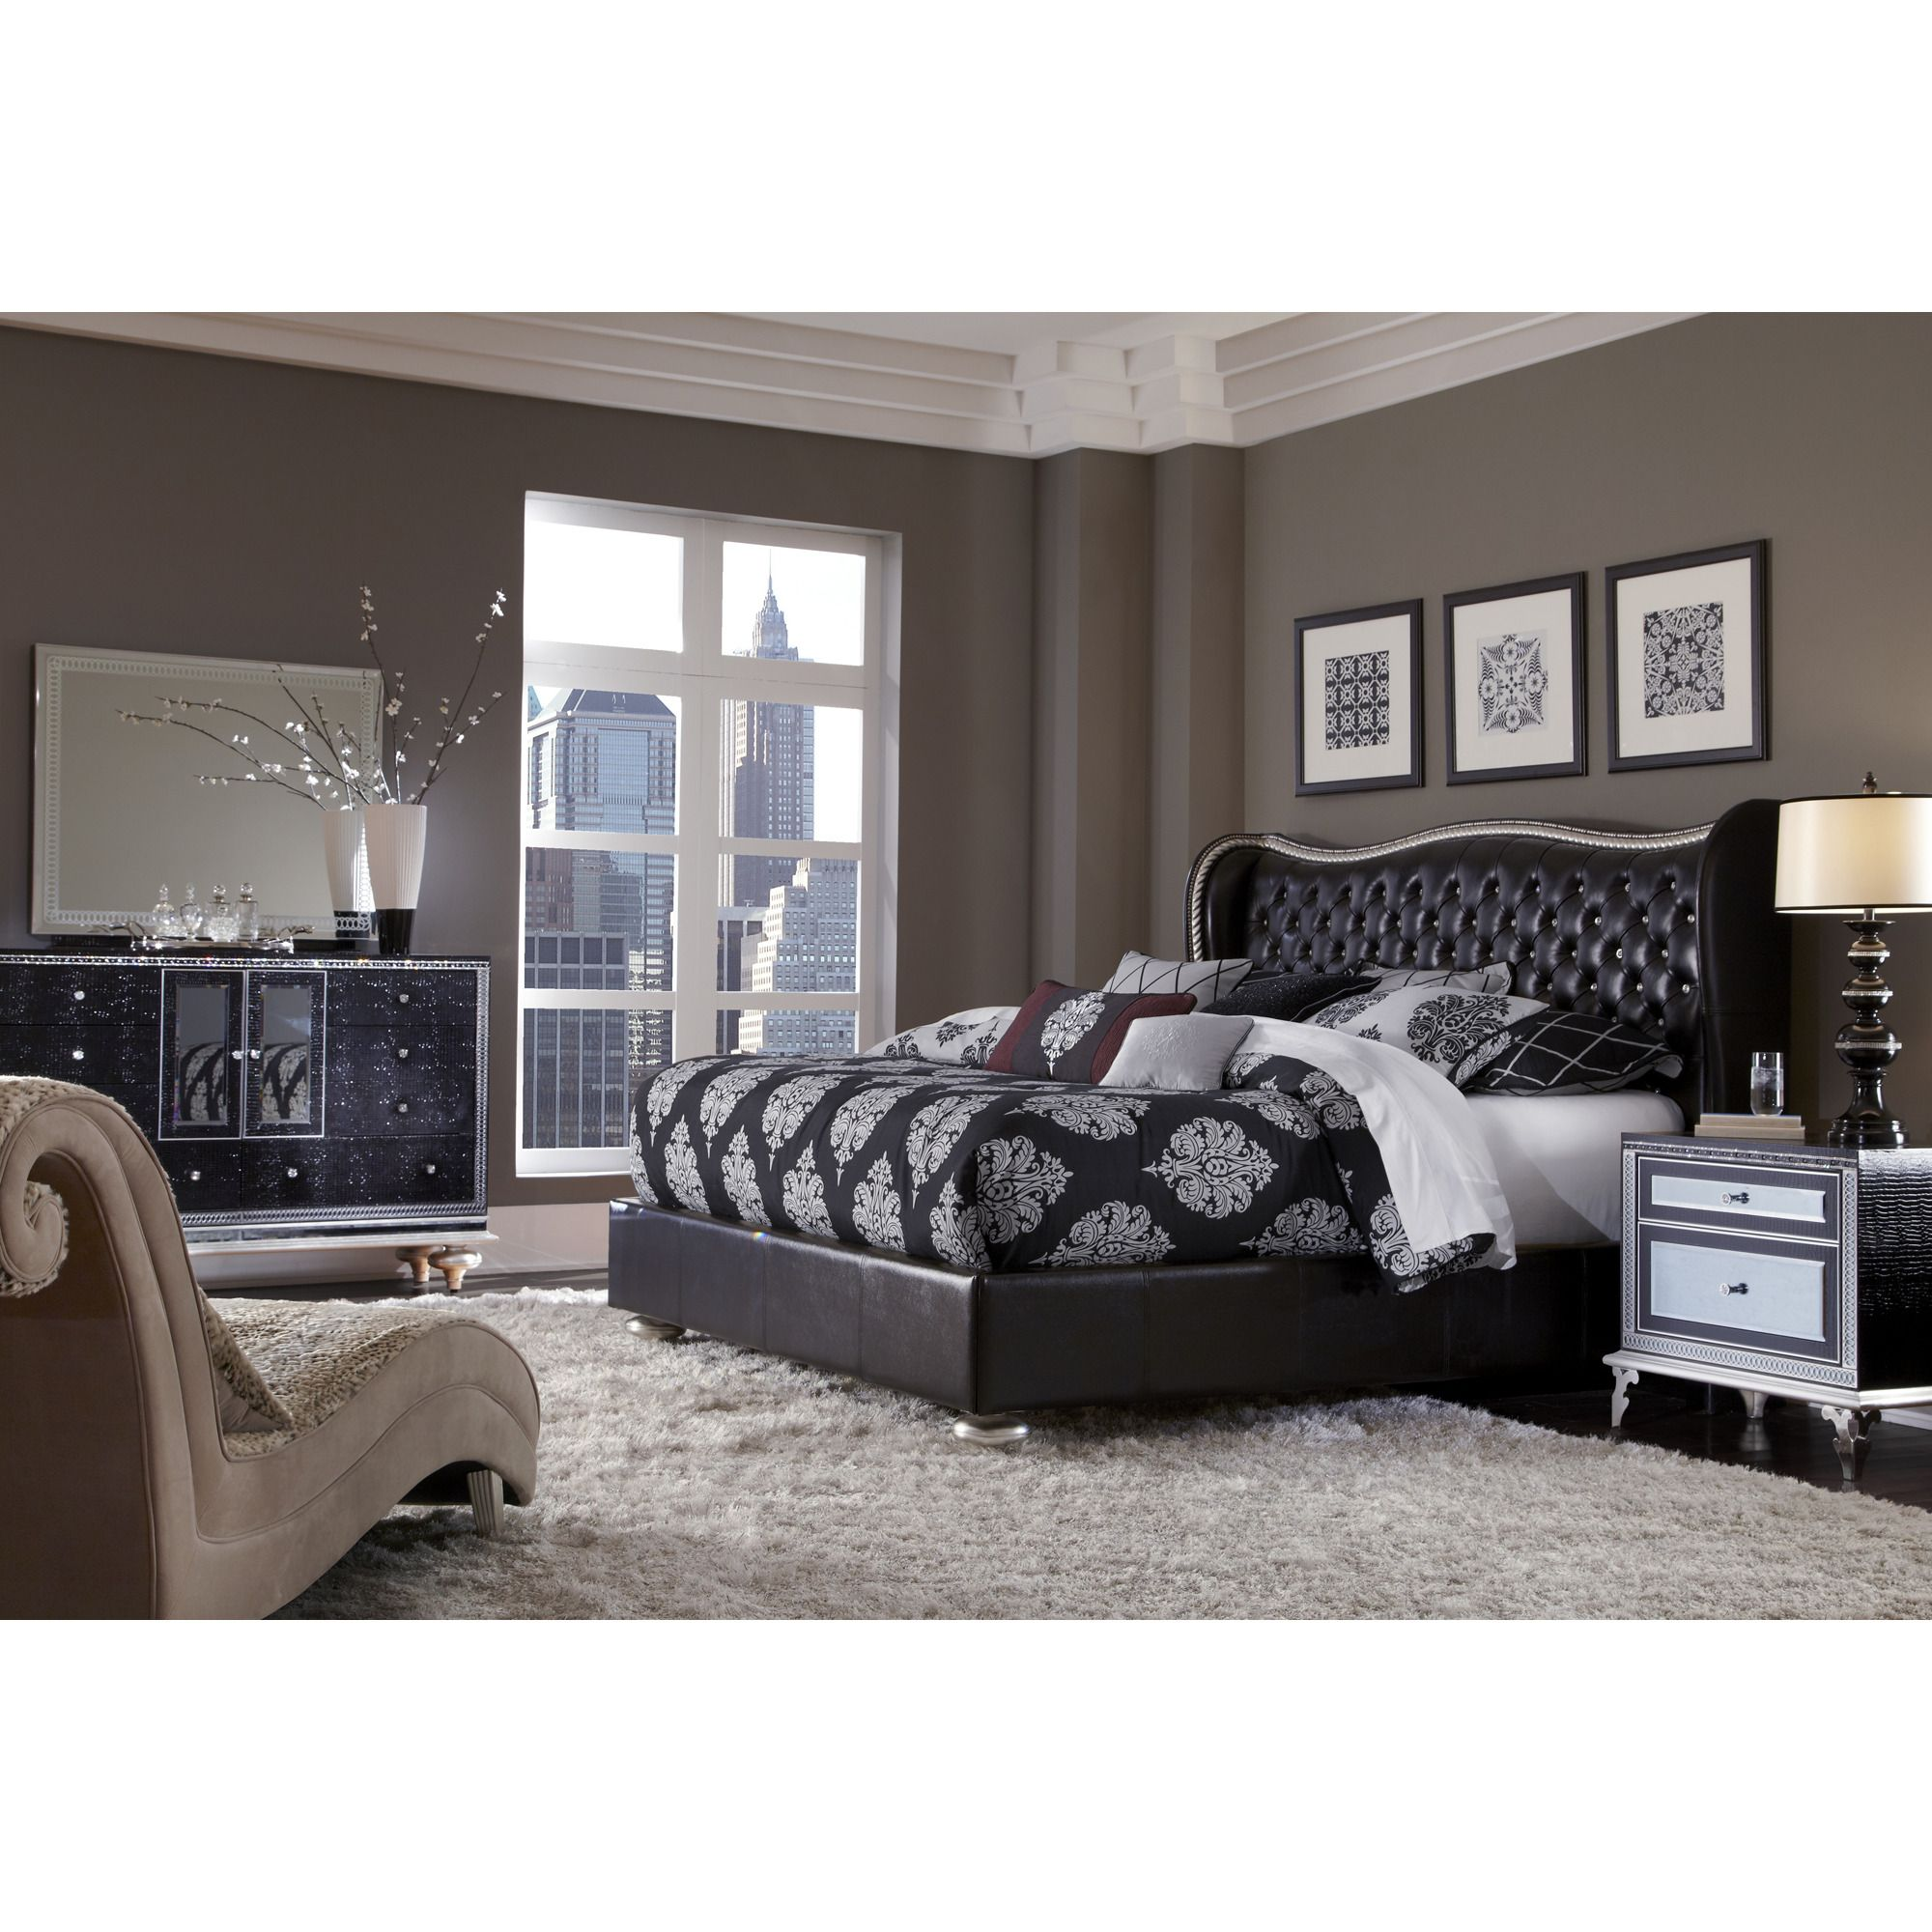 hollywood bedroom michelle swank ideas bedrooms by on pinterest set camara pin